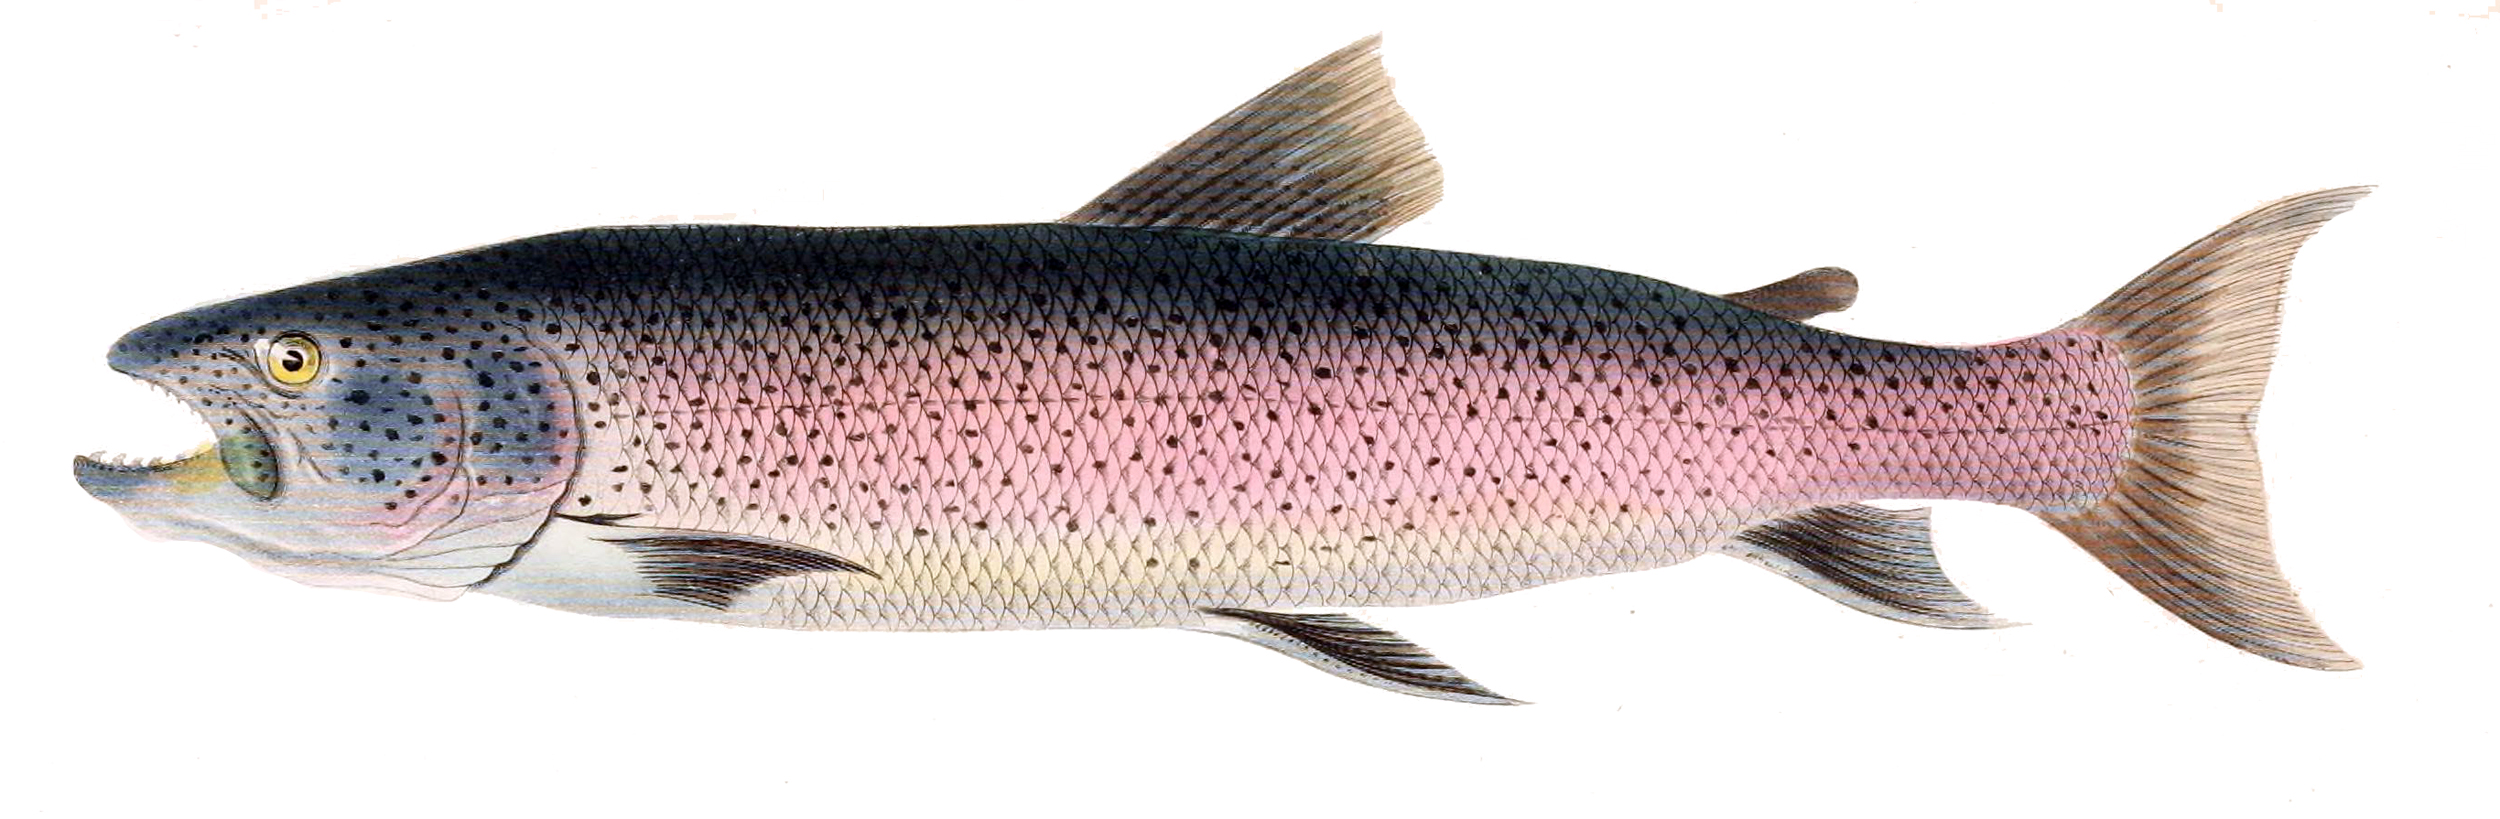 Five reasons you should stop eating salmon meatonomic for Fish that eat other fish